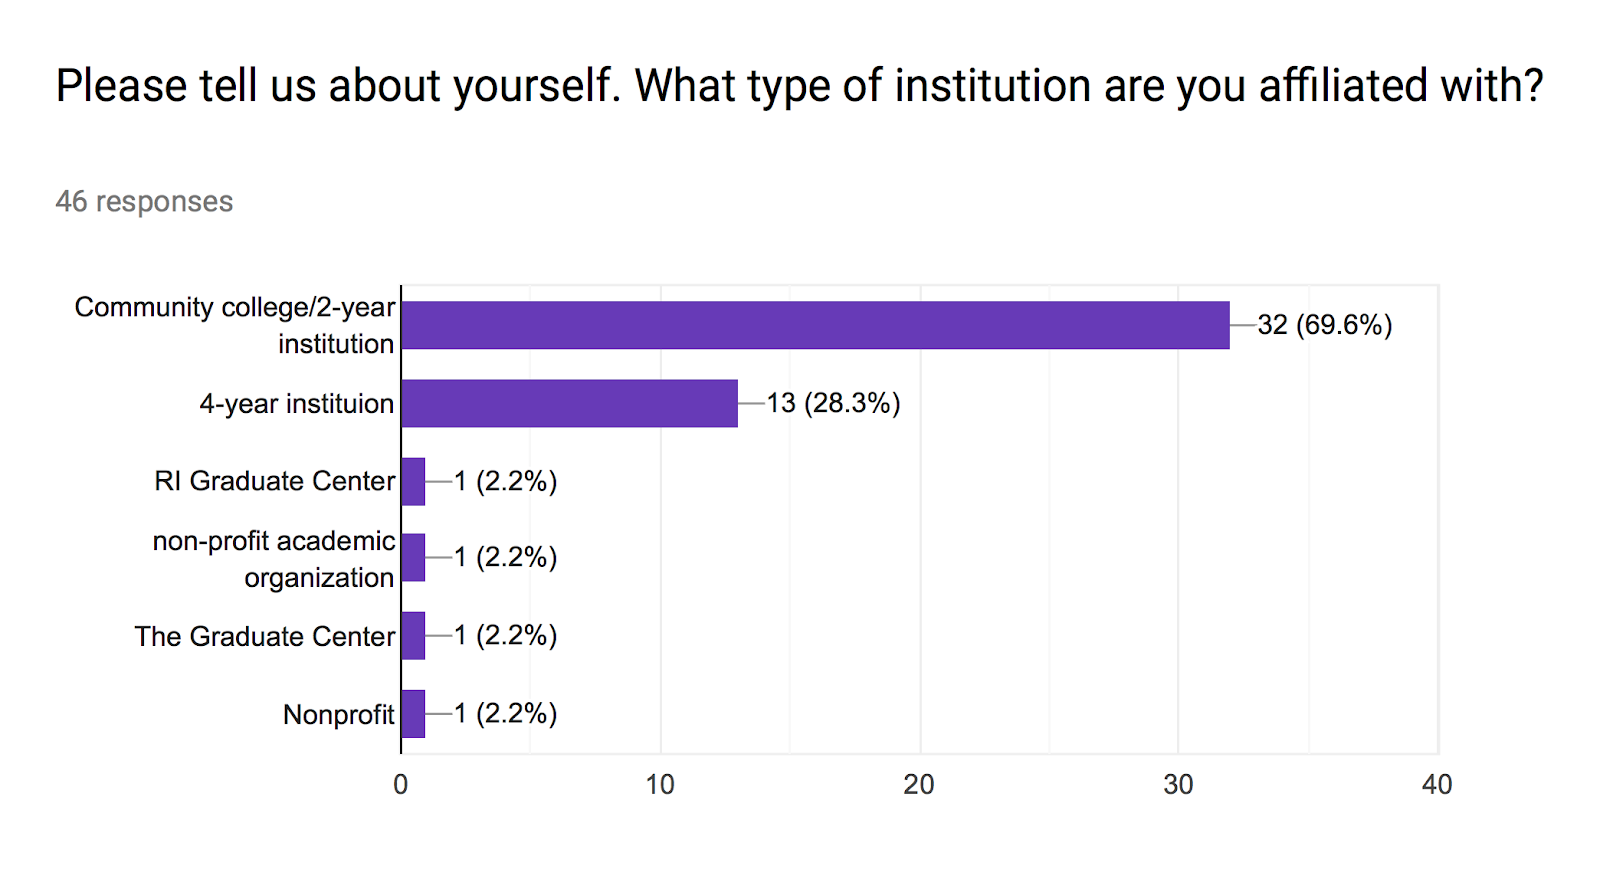 Forms response chart. Question title: Please tell us about yourself. What type of institution are you affiliated with? . Number of responses: 46 responses.